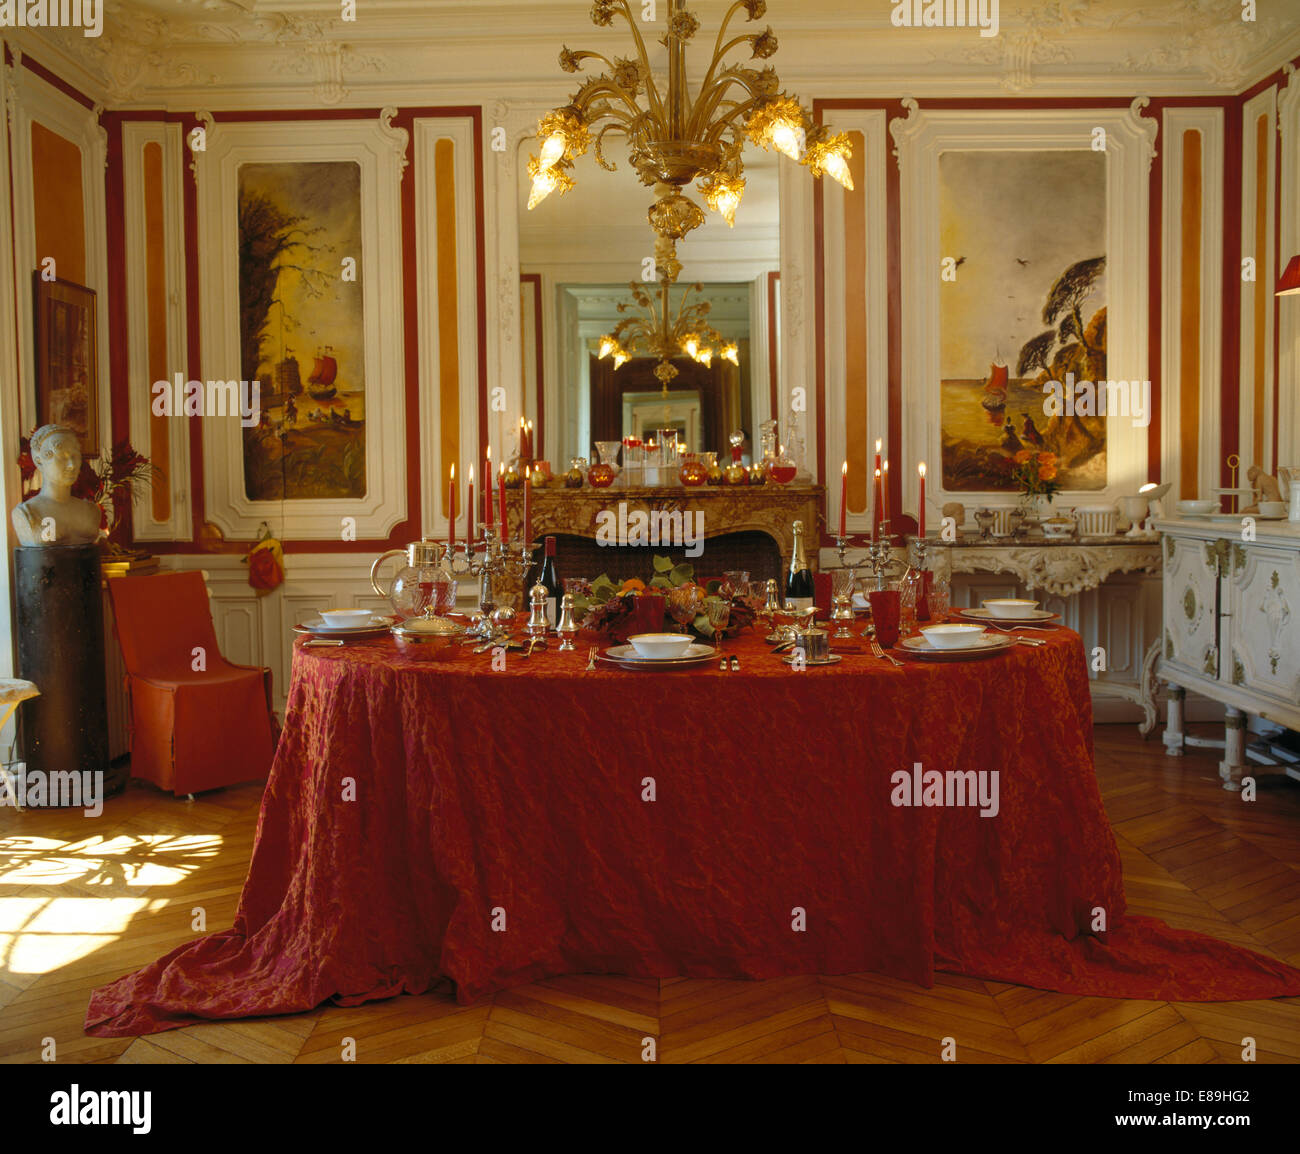 chandelier above table set for dinner with rich red cloth in chandelier above table set for dinner with rich red cloth in french apartment dining room with painted murals